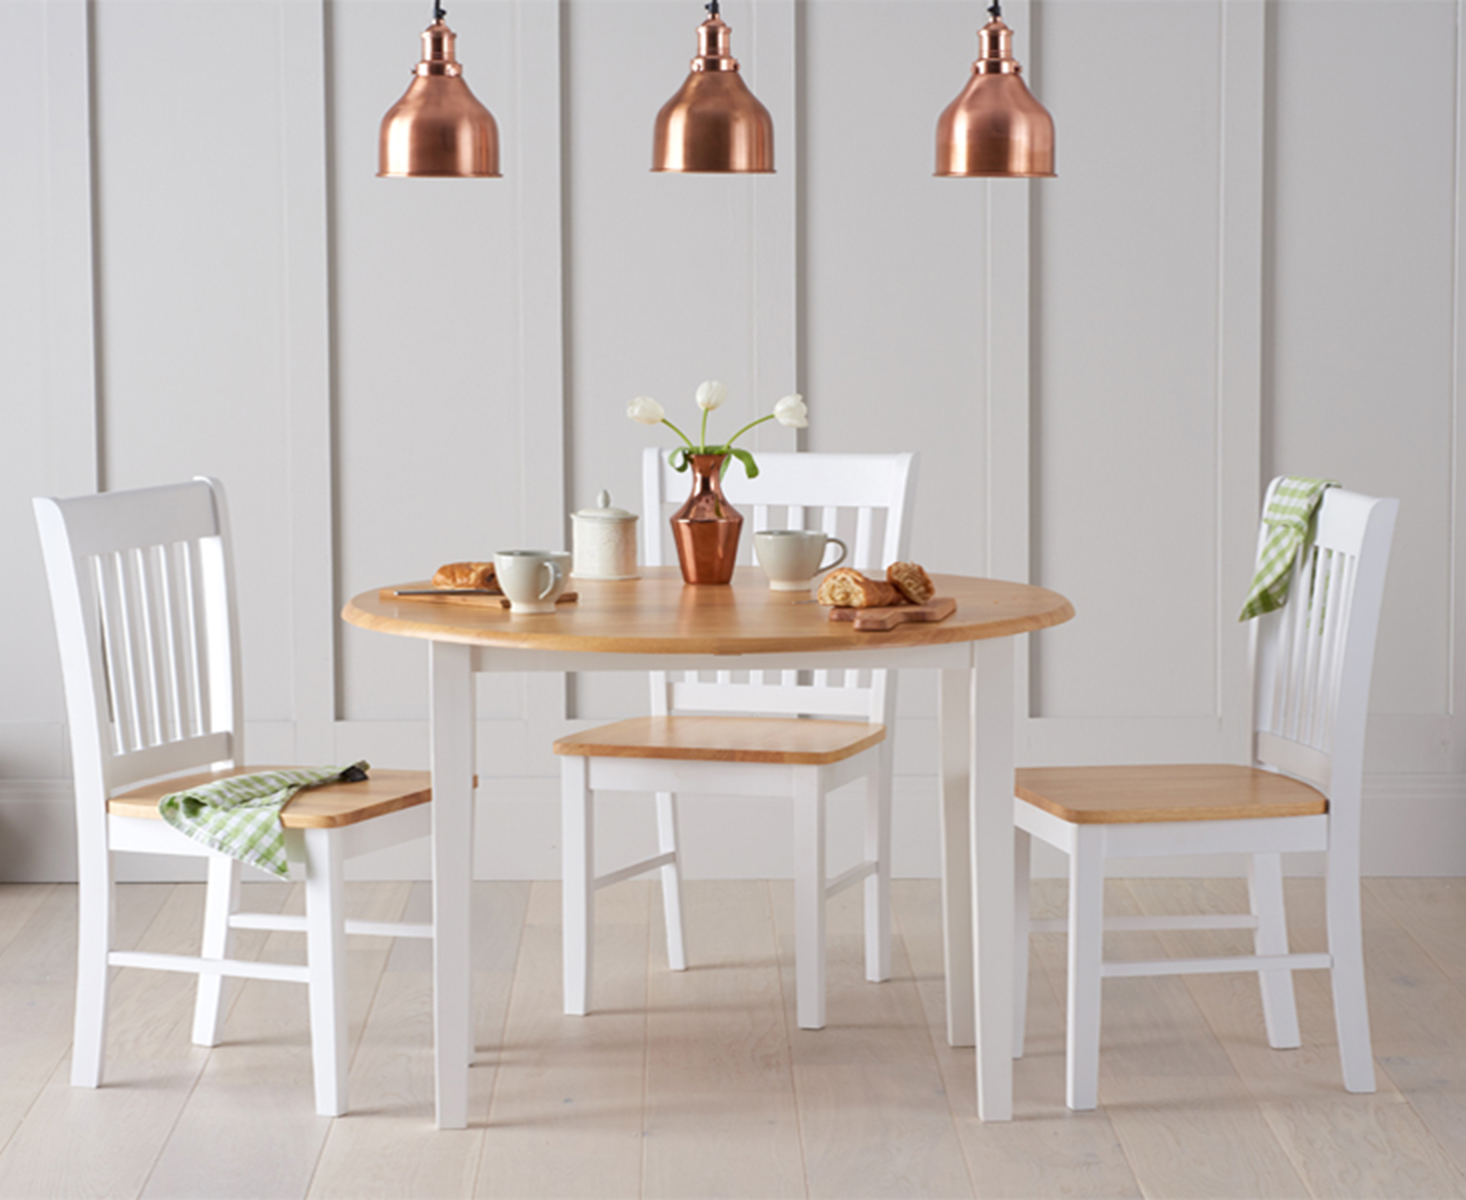 Genoa 100cm Oak and White Drop Leaf Extending Dining Table Set with Chairs